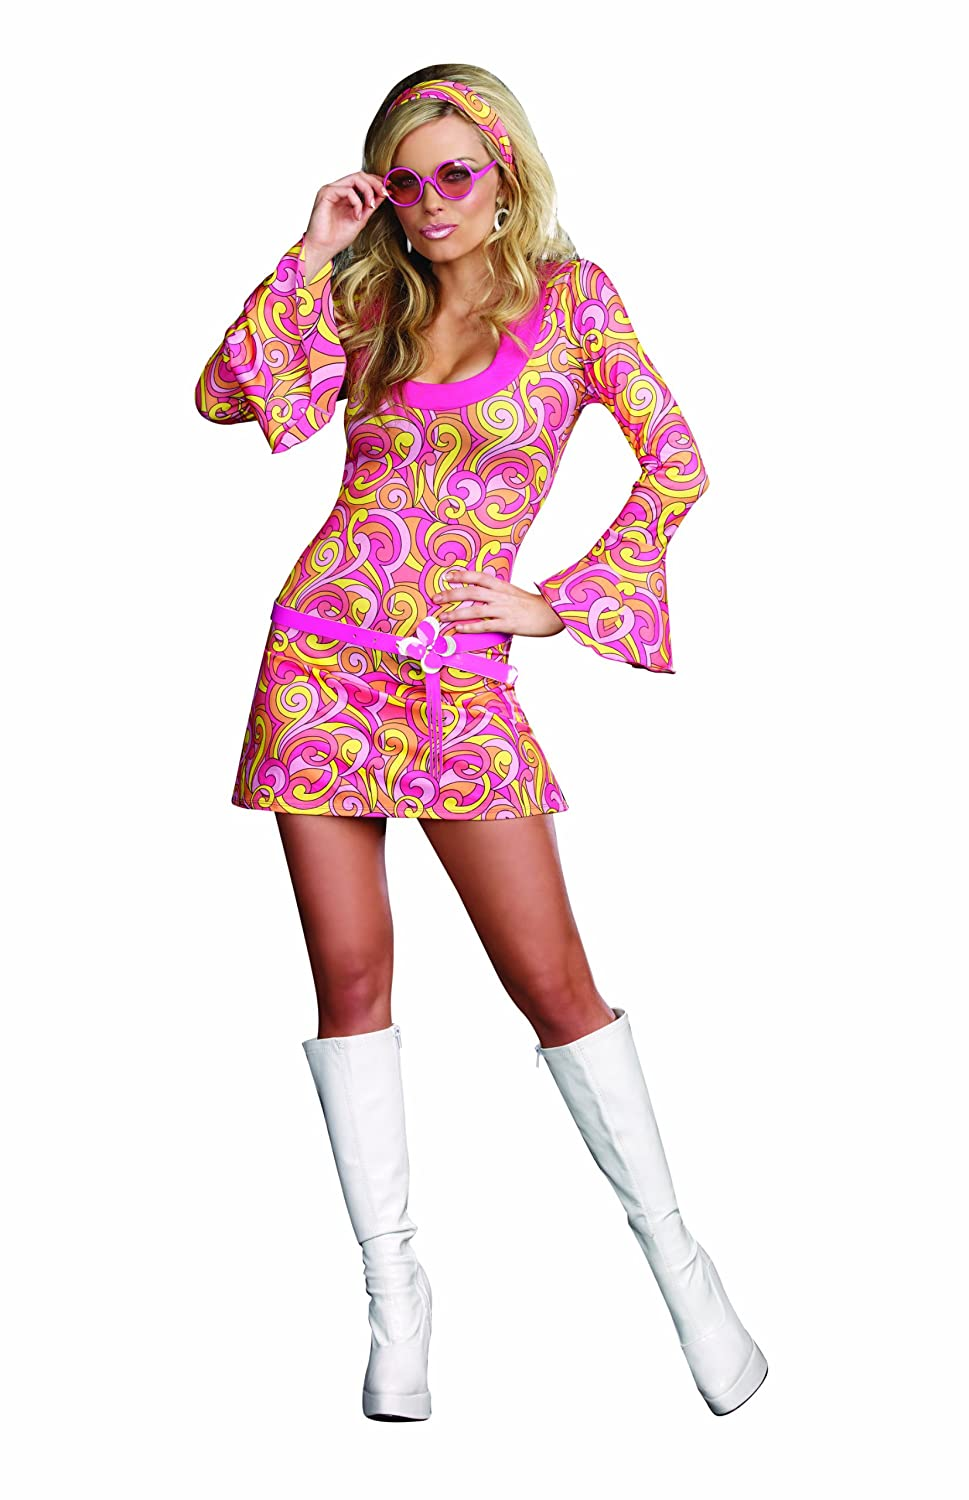 Hippie Costumes, Hippie Outfits Dreamgirl Womens Go Go Gorgeous Costume $26.99 AT vintagedancer.com